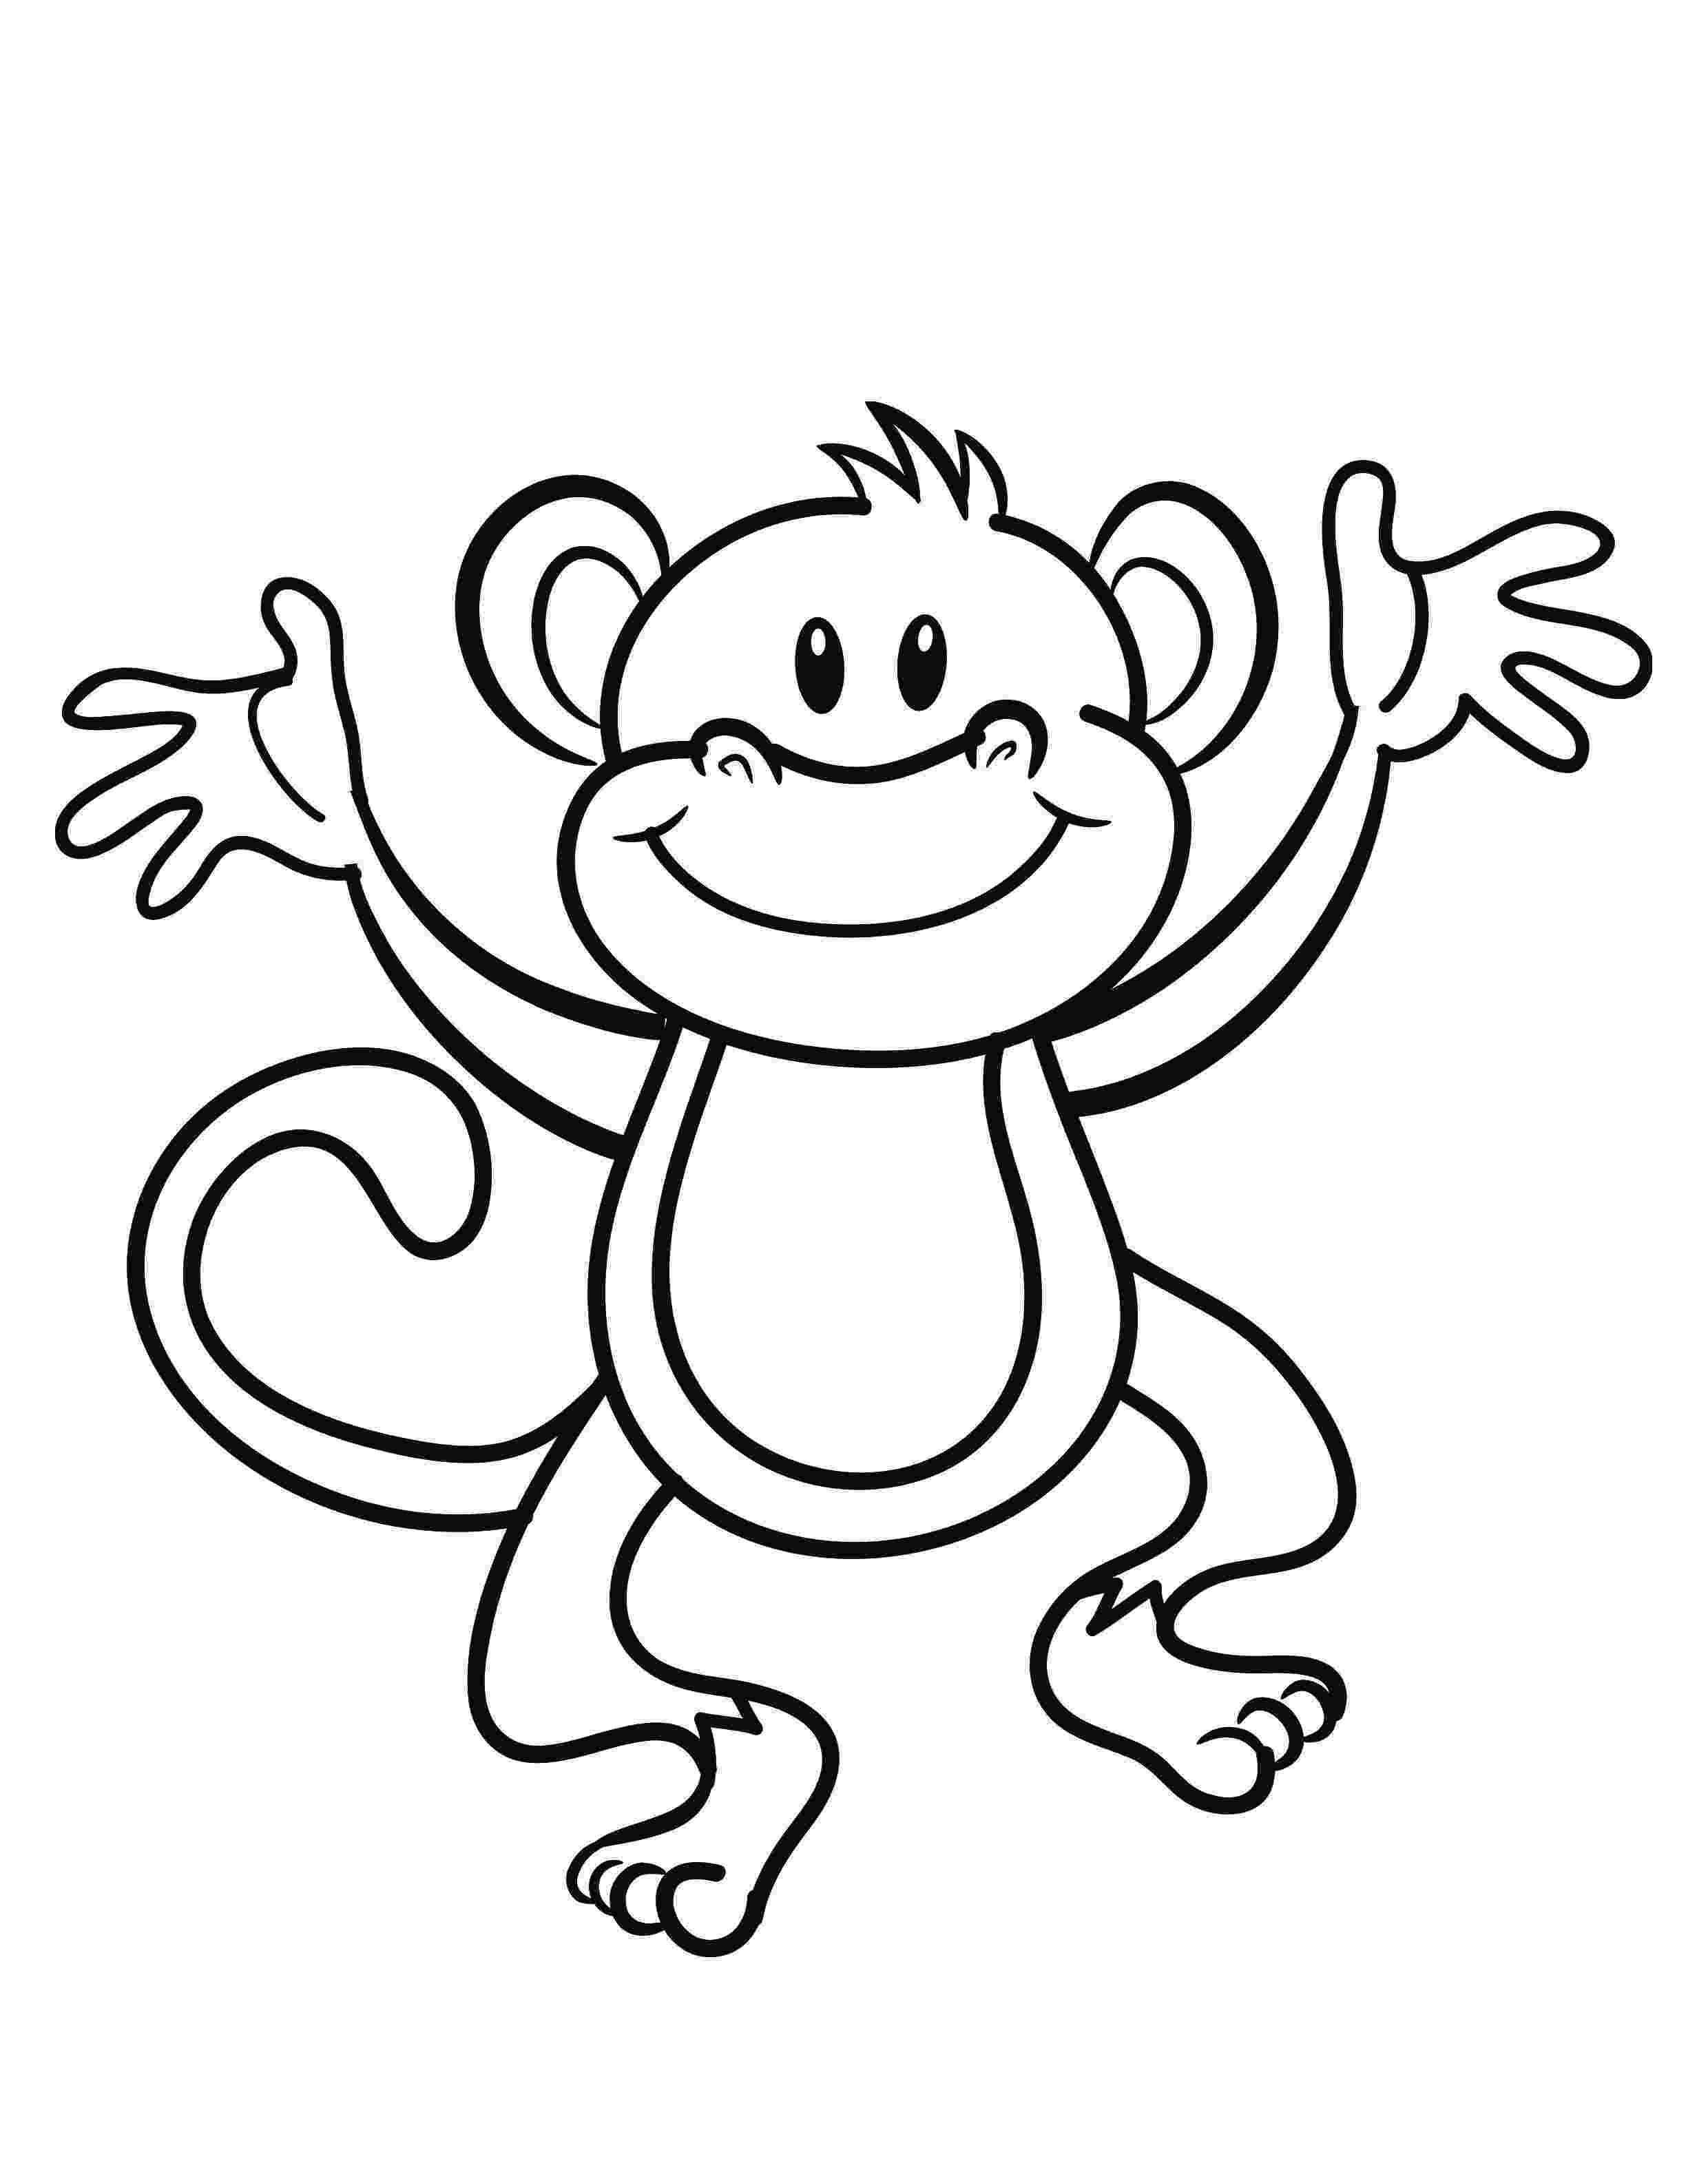 monkey color pages free printable monkey coloring pages for kids cool2bkids pages color monkey 1 1